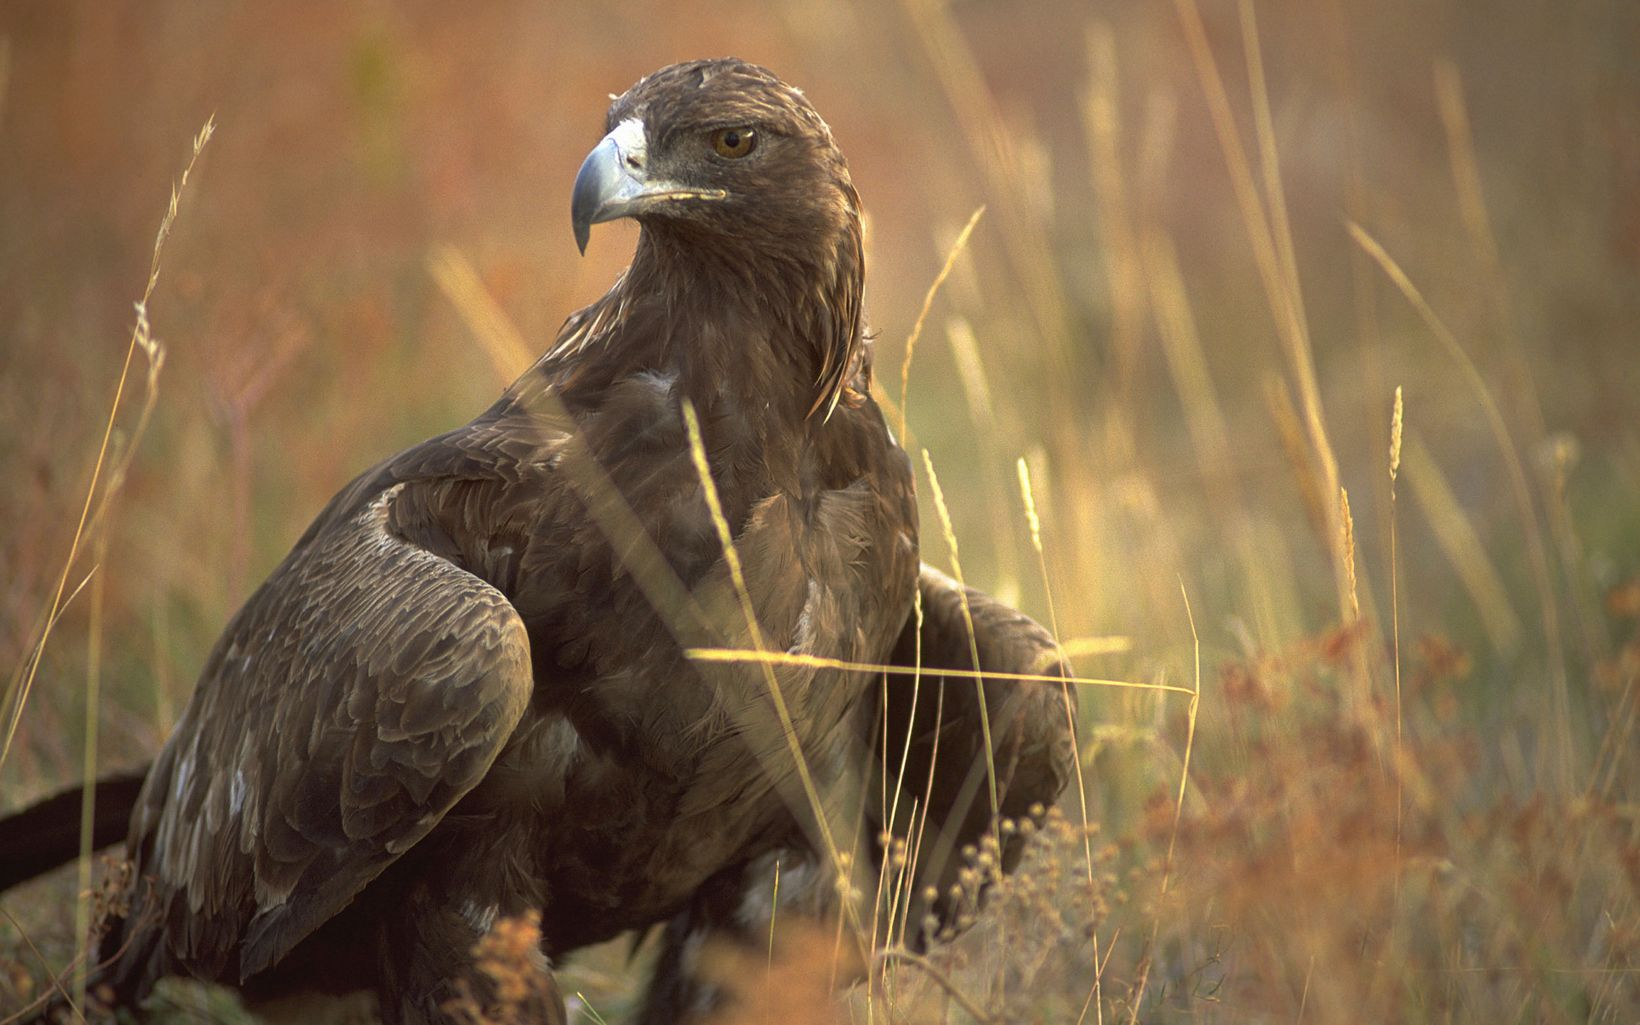 Golden eagle at Zumwalt Prairie in Oregon